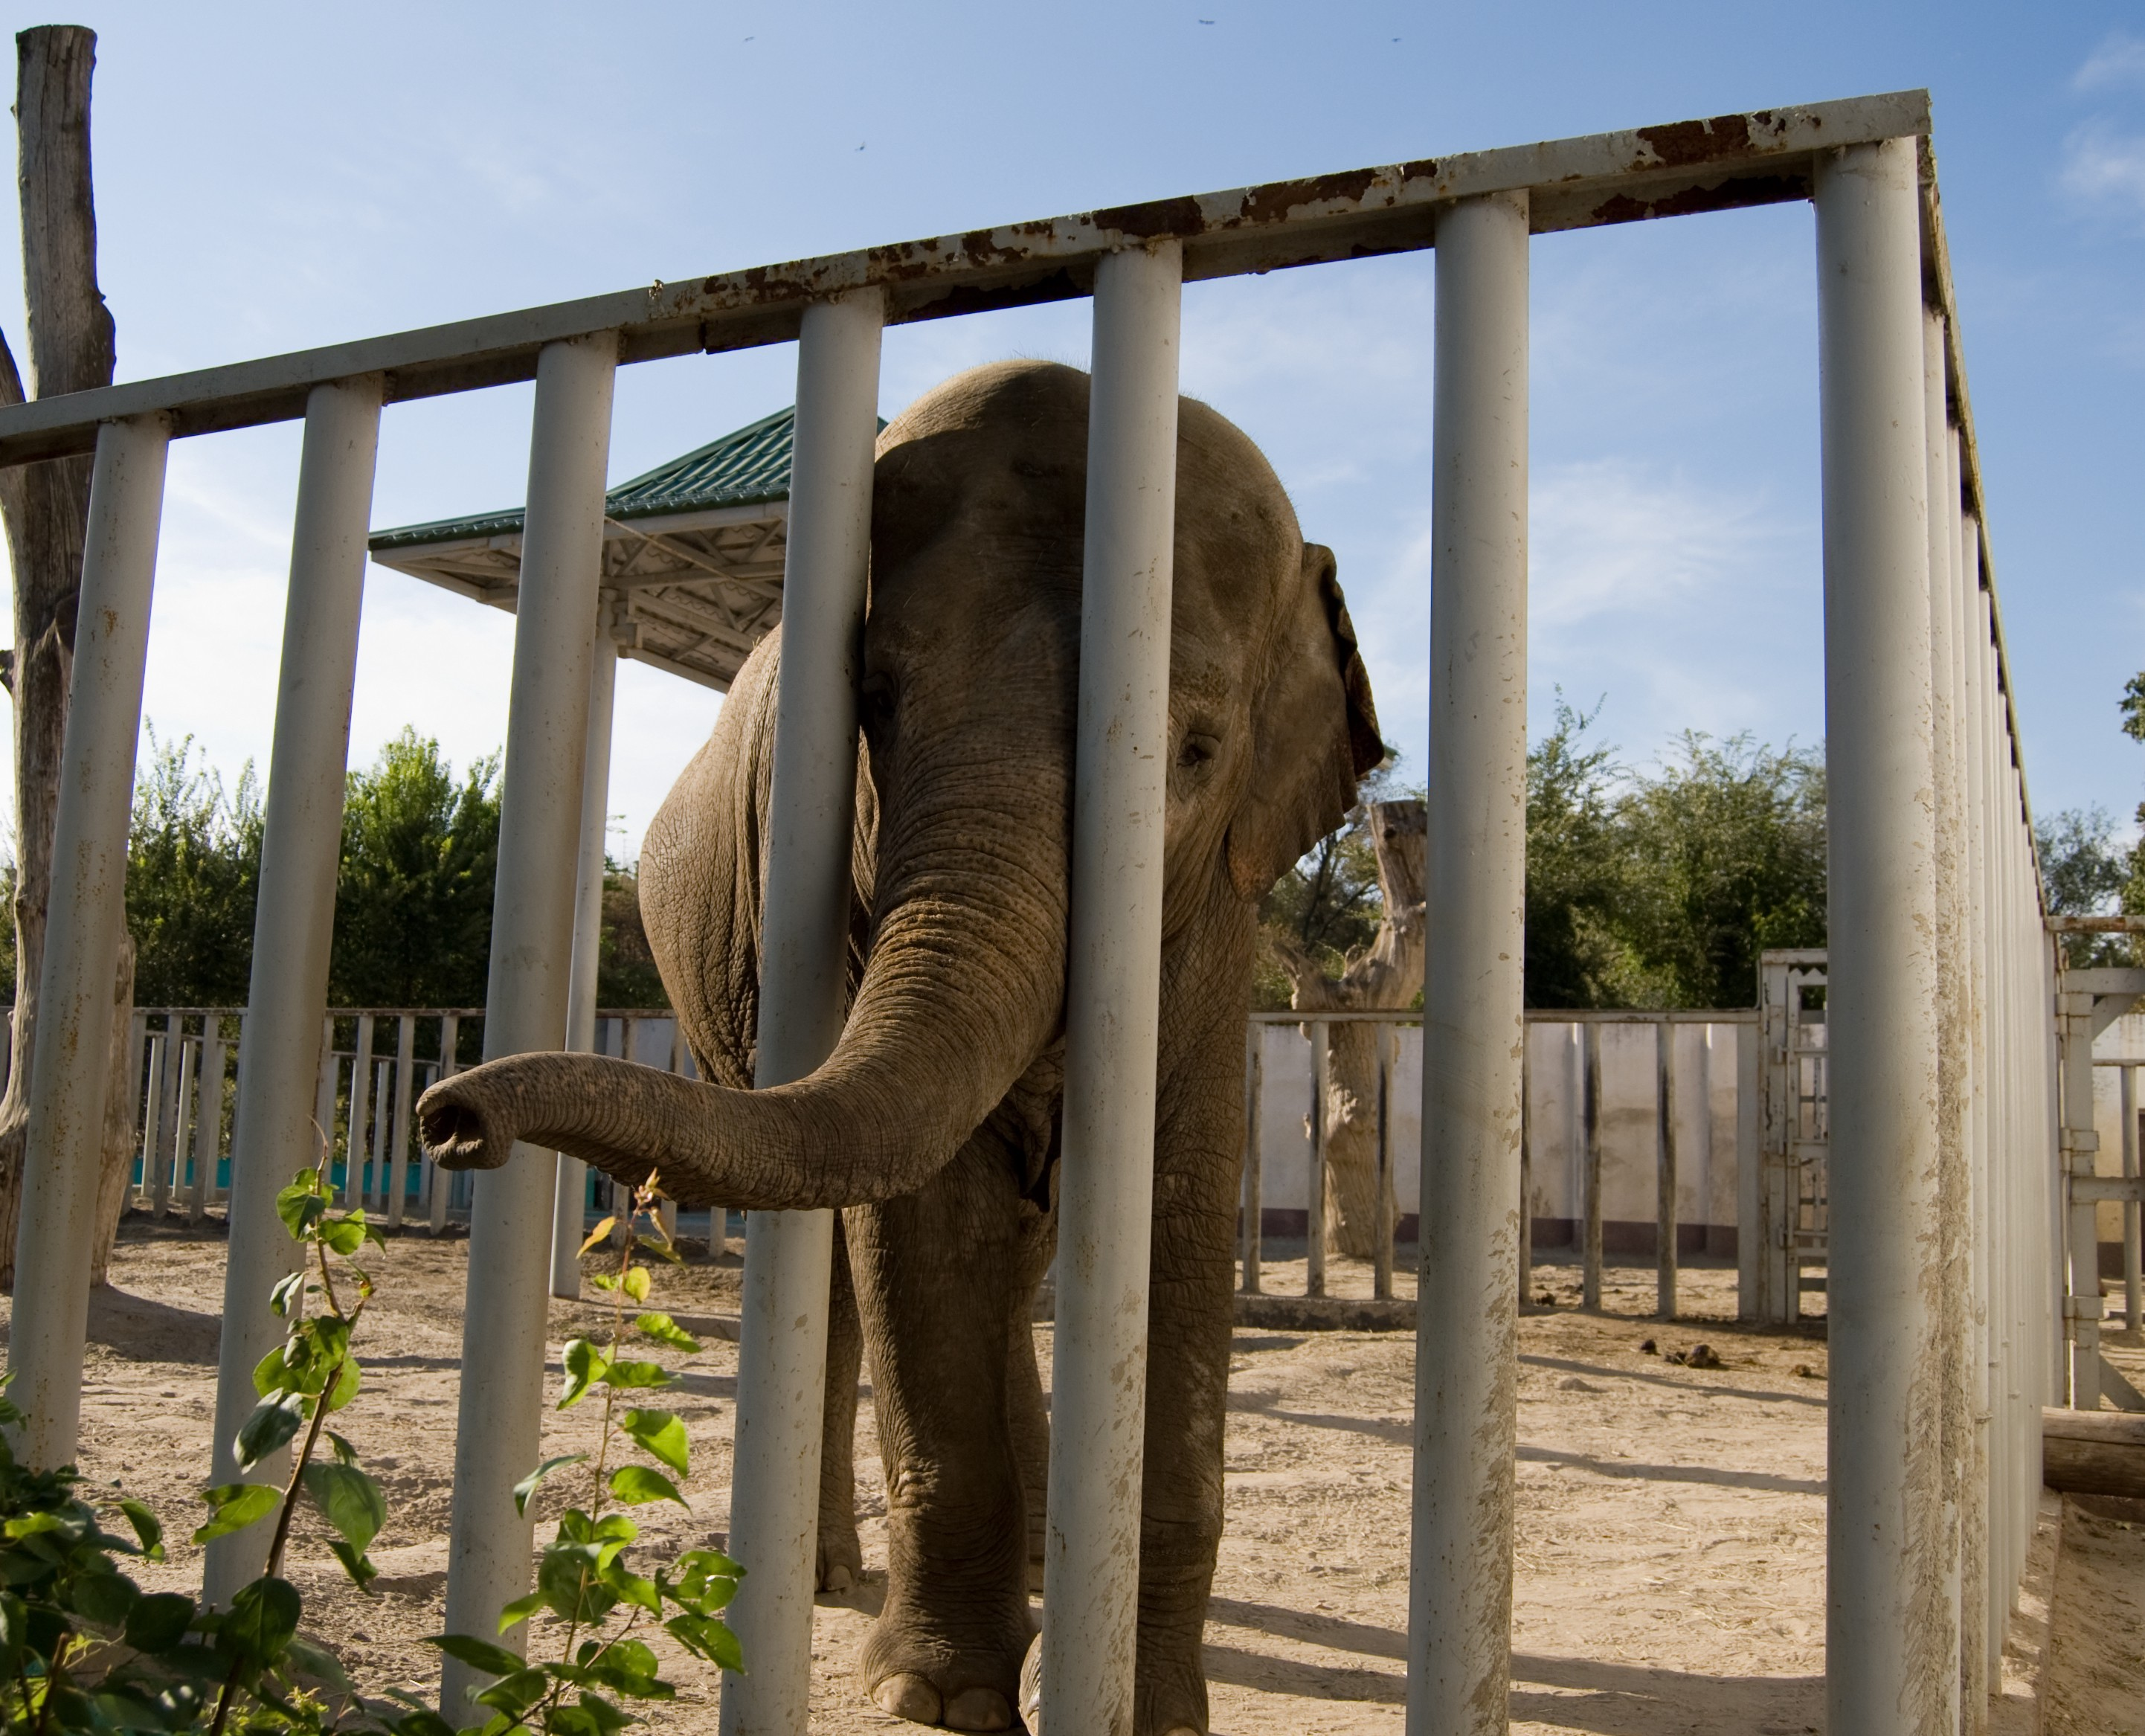 elephant in a cage